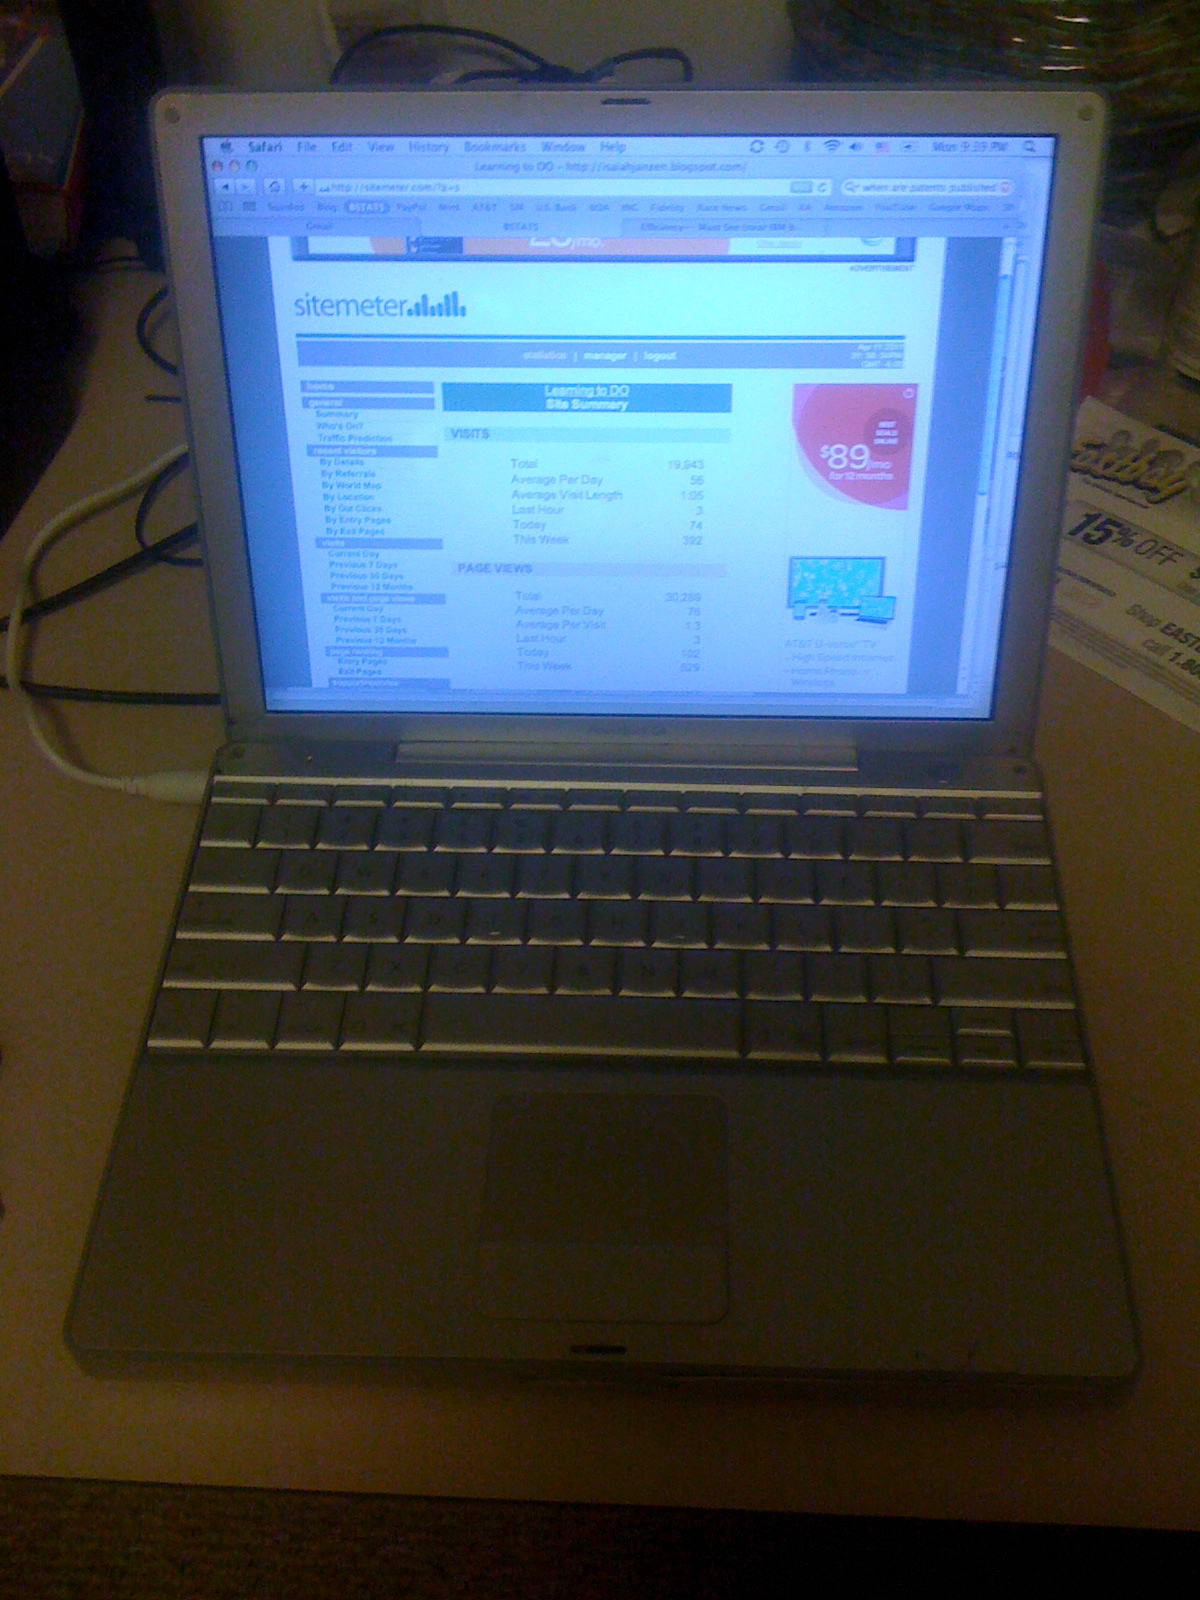 Learning to DO: My 7 Year Old PowerBook G4 Computer